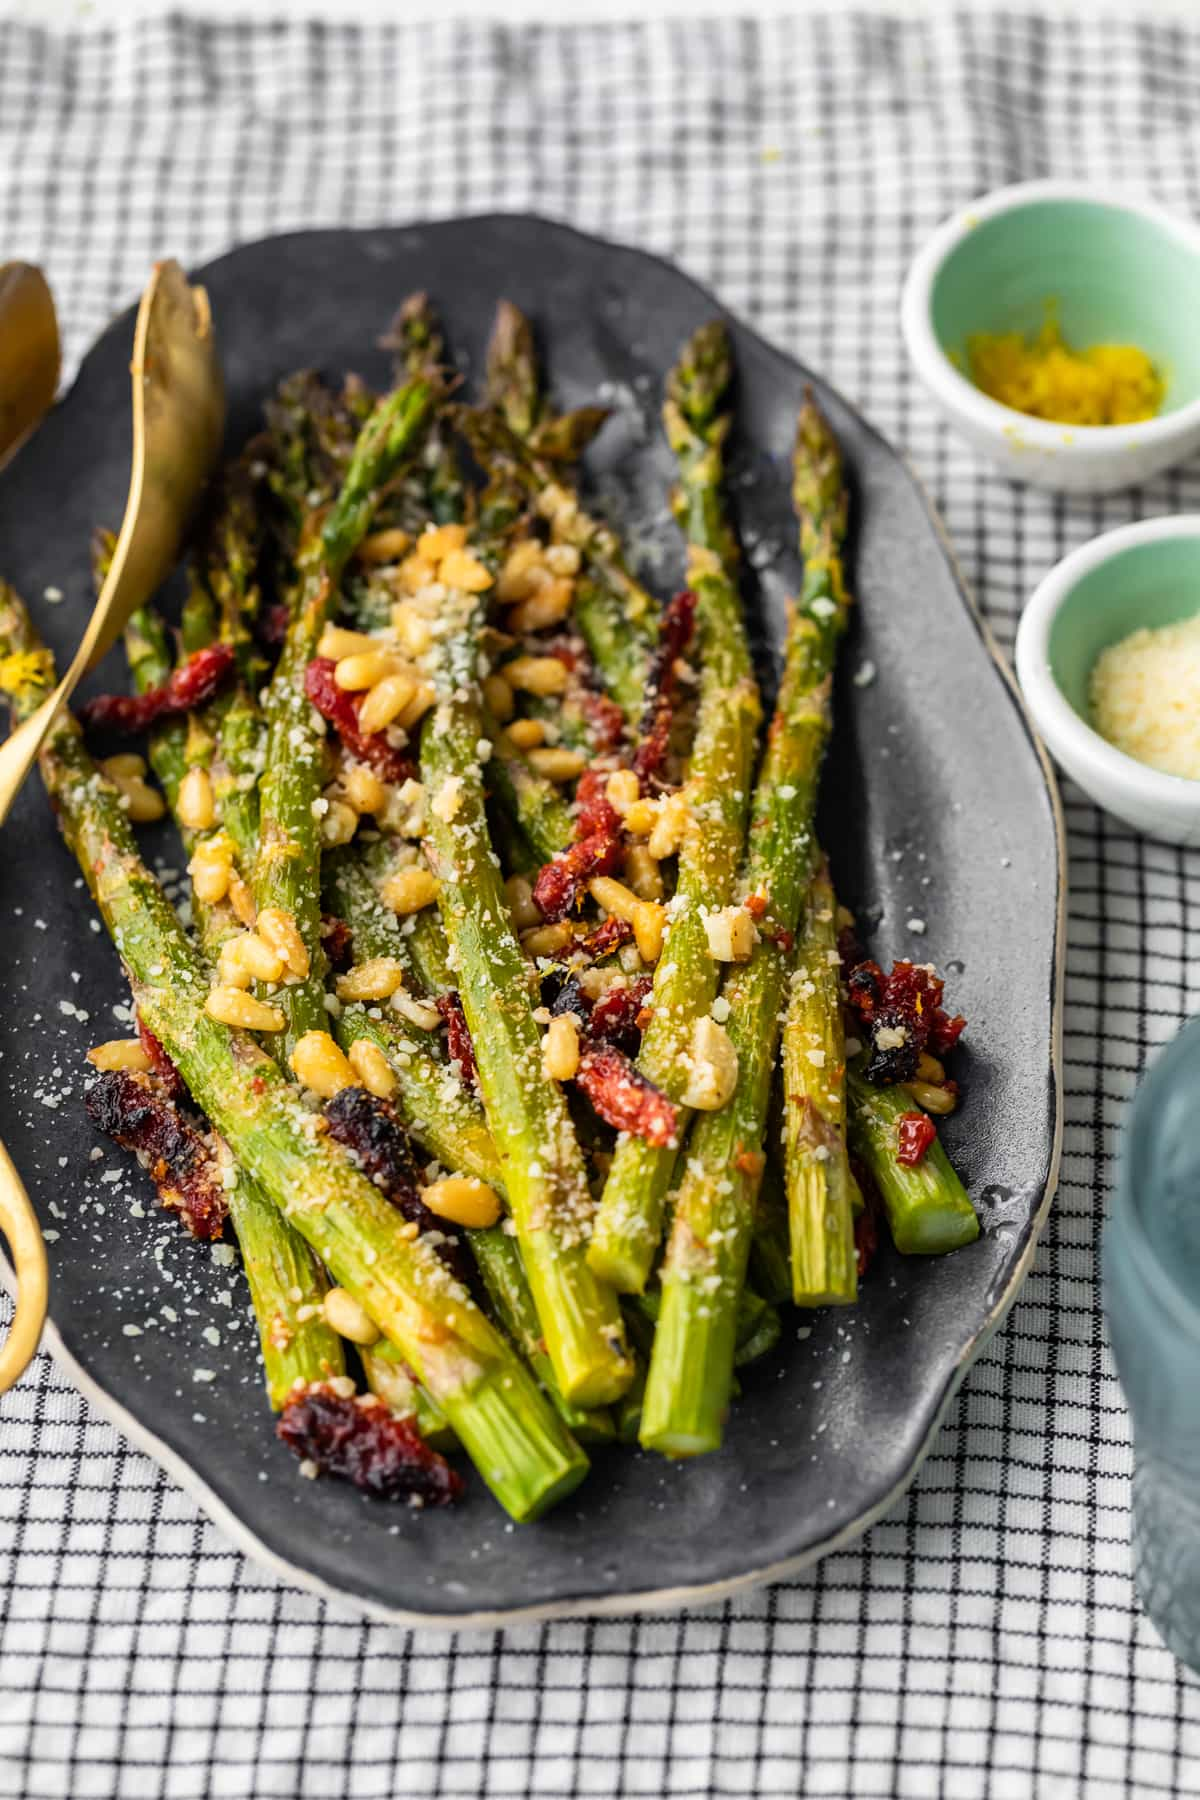 a plate of asparagus mixed with sun dried tomatoes, pine nuts, and more